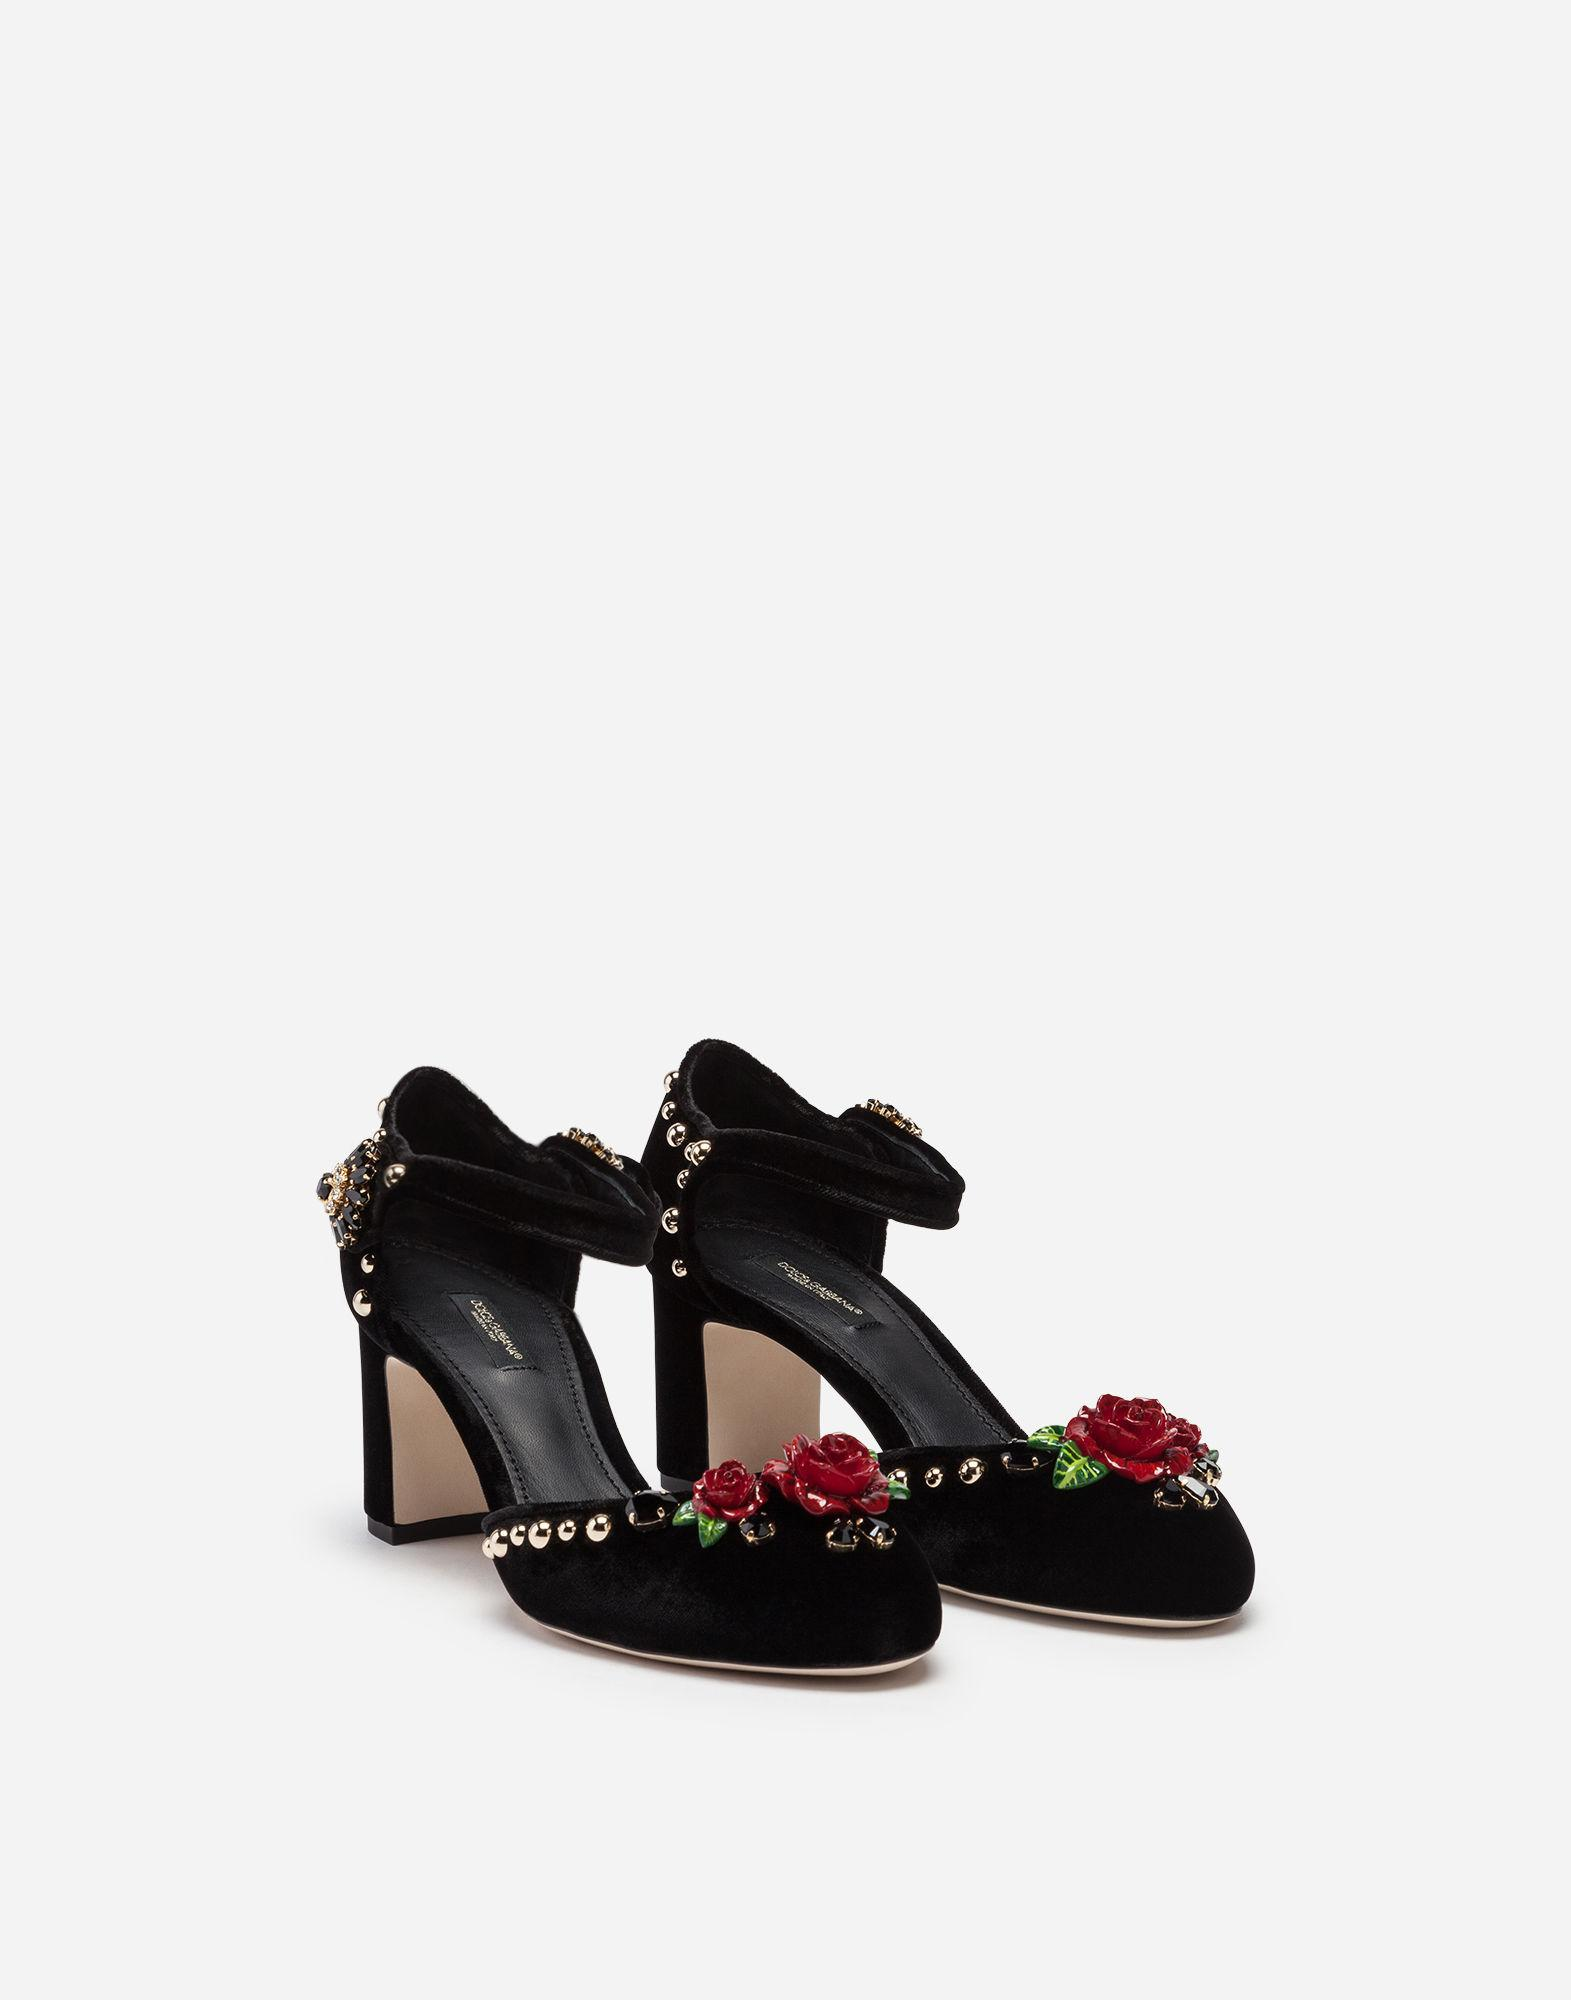 7d4ec5f0462 Lyst - Dolce   Gabbana Velvet Ankle Straps With Embroidery in Black